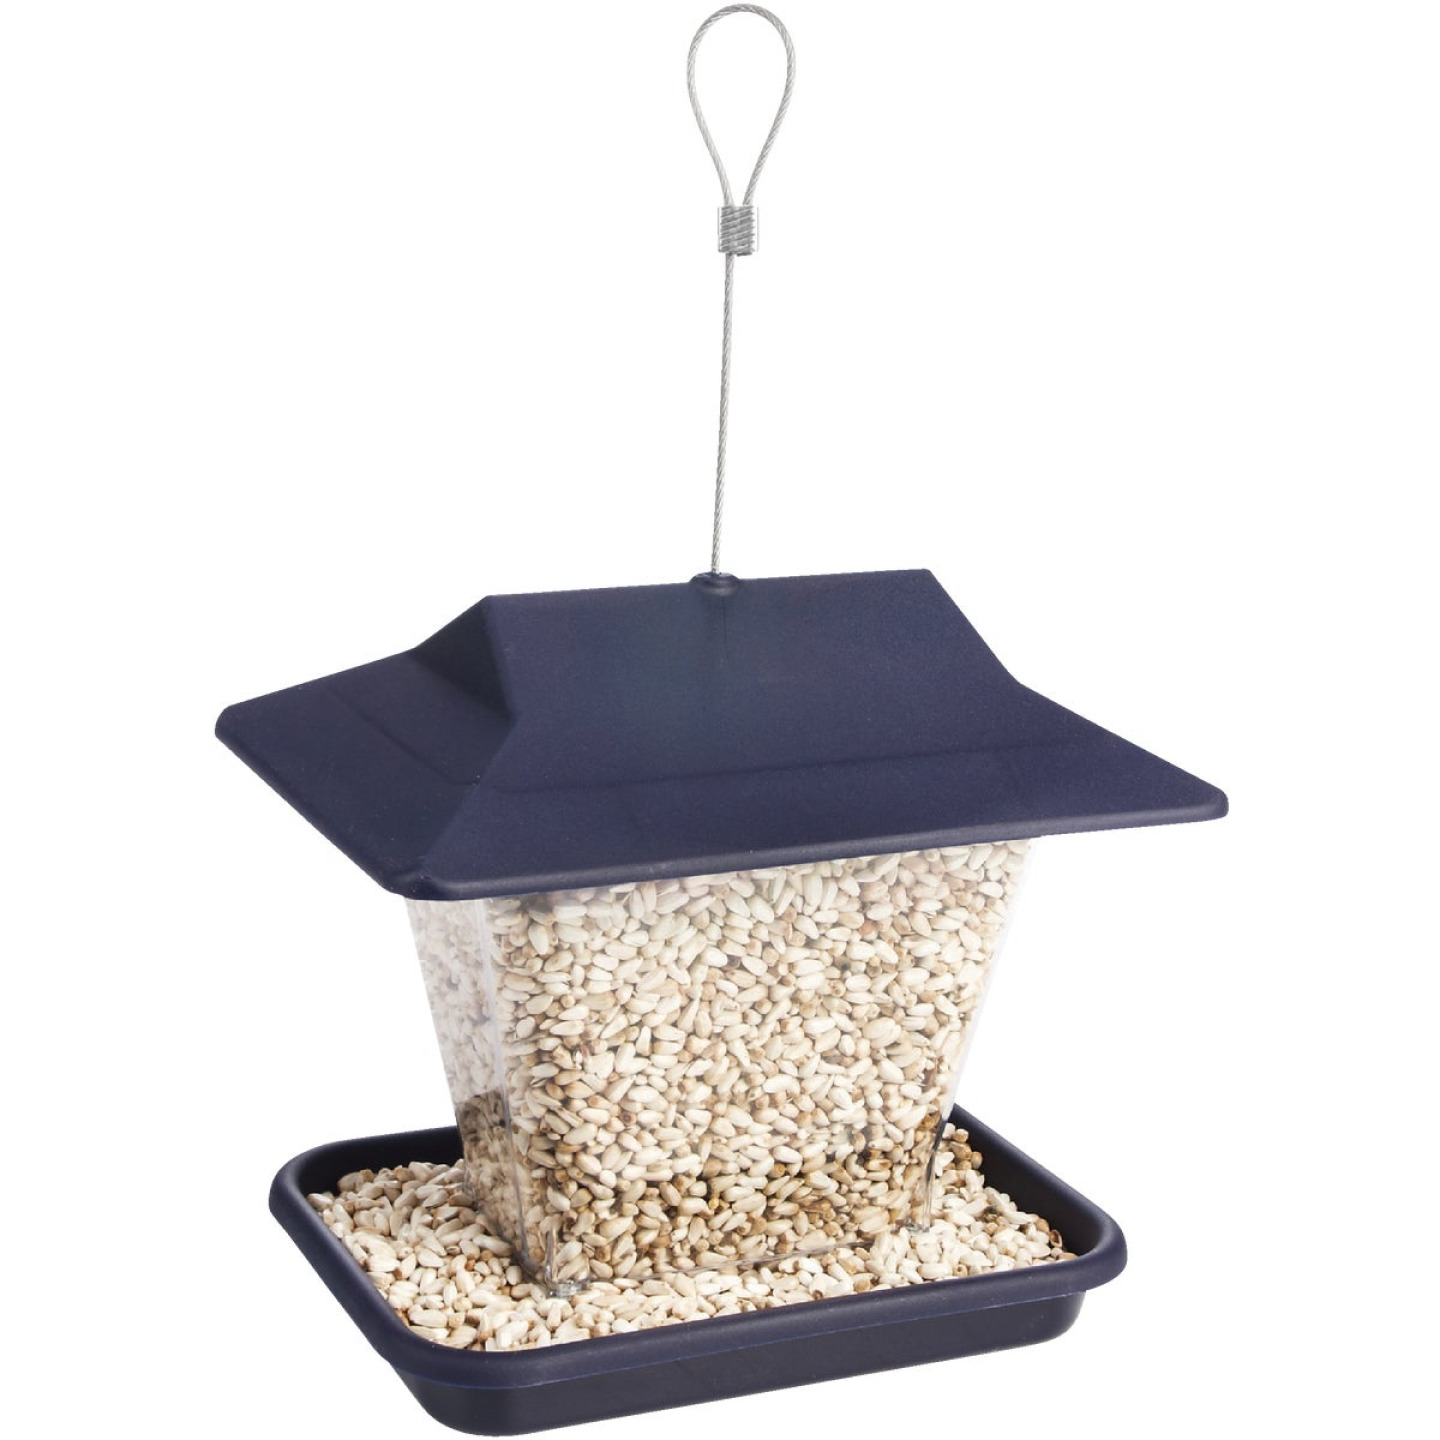 Stokes Select Belle Fleur Blue Plastic Hopper Bird Feeder Image 2